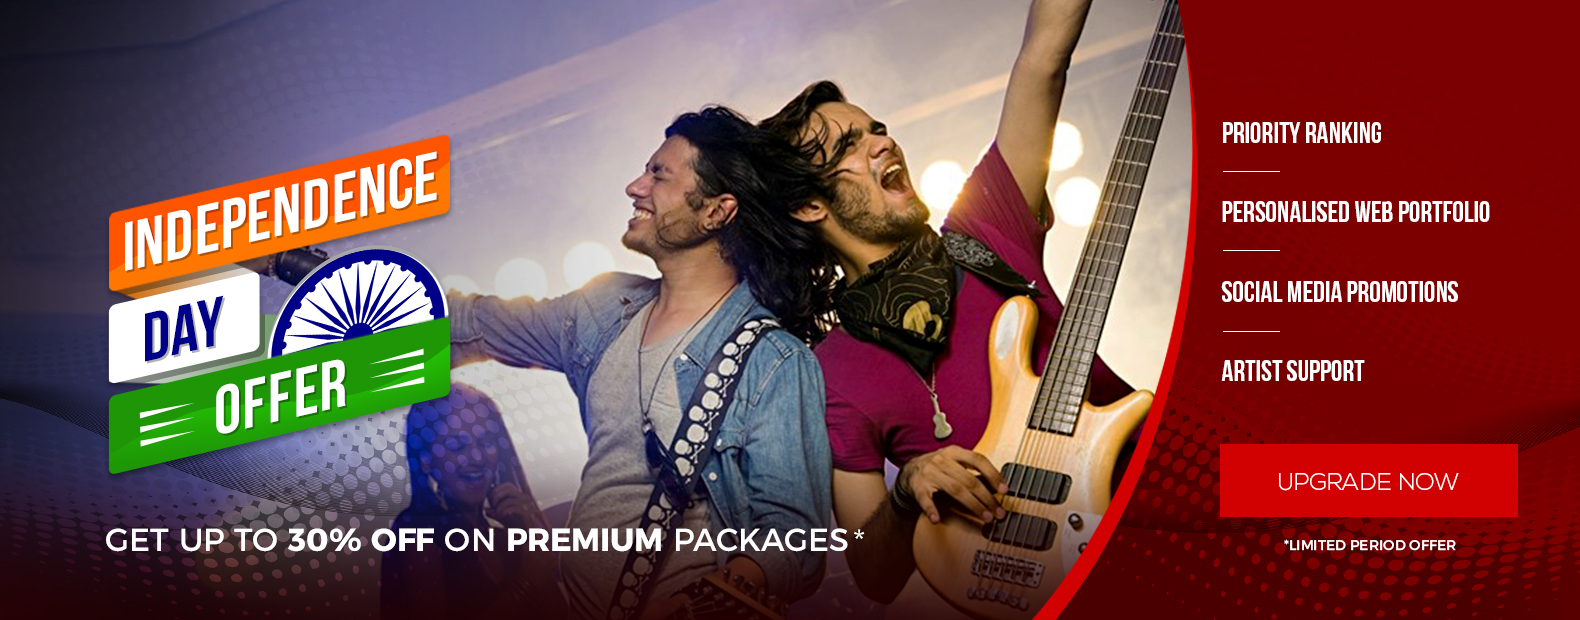 INDEPENDENCE DAY OFFER, GET UP TO 30% OFF ON PREMIUM PACKAGES*